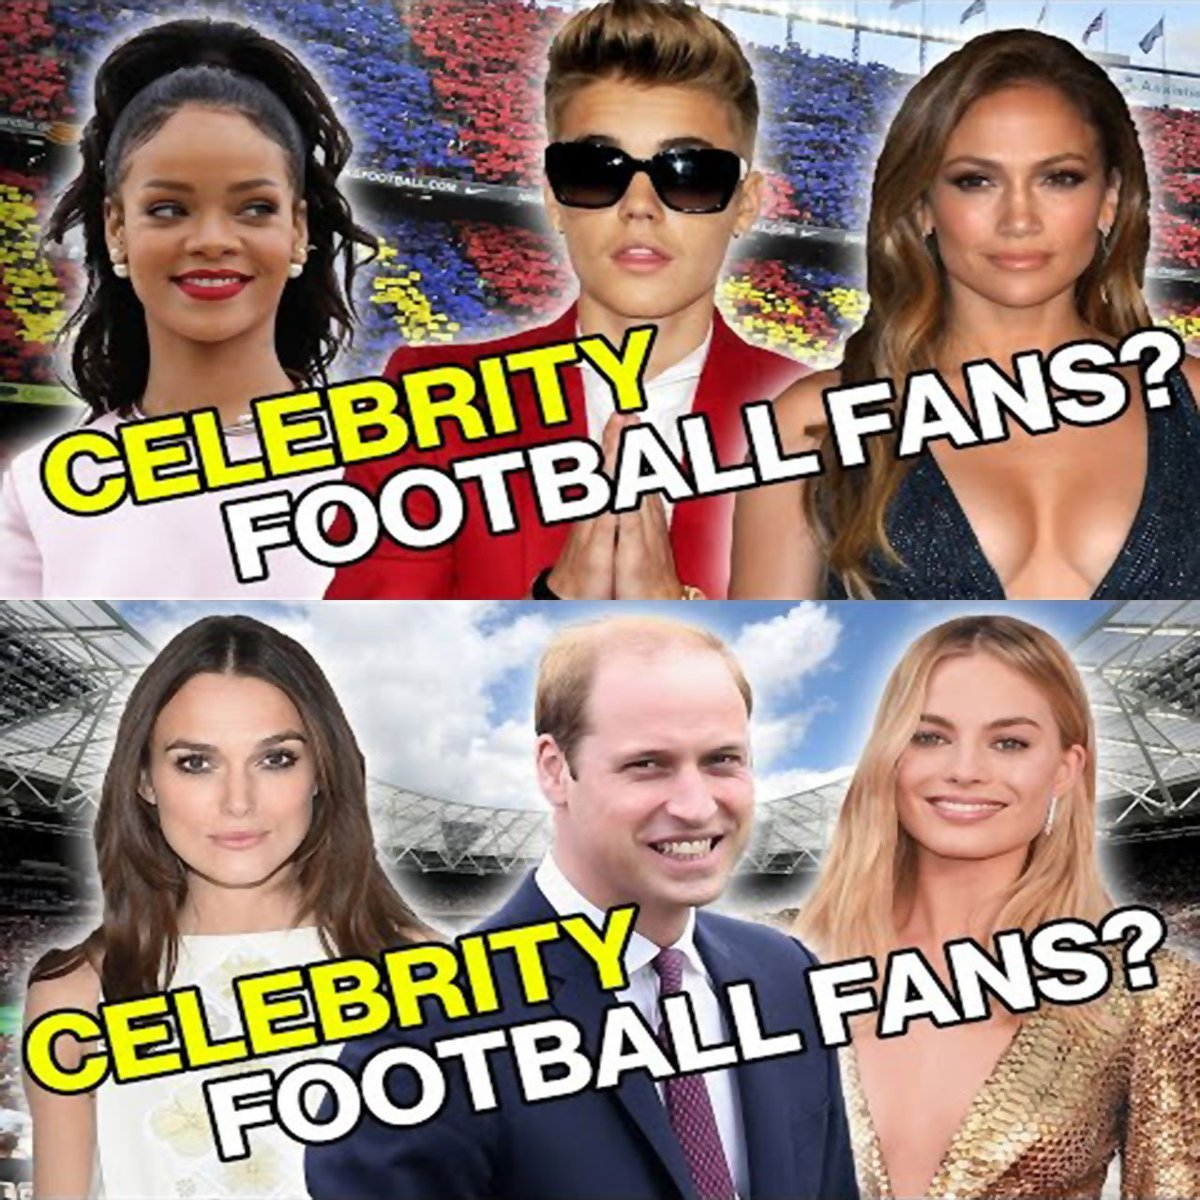 Kobe Bryant backs #Barca: Which celebrity fan supports your favorite soccer/football club?  http://www. starrcards.com/kobe-bryant-ba cks-barca-which-celebrity-fan-supports-your-favorite-soccerfootball-club/ &nbsp; … <br>http://pic.twitter.com/V9z3ef2WZZ